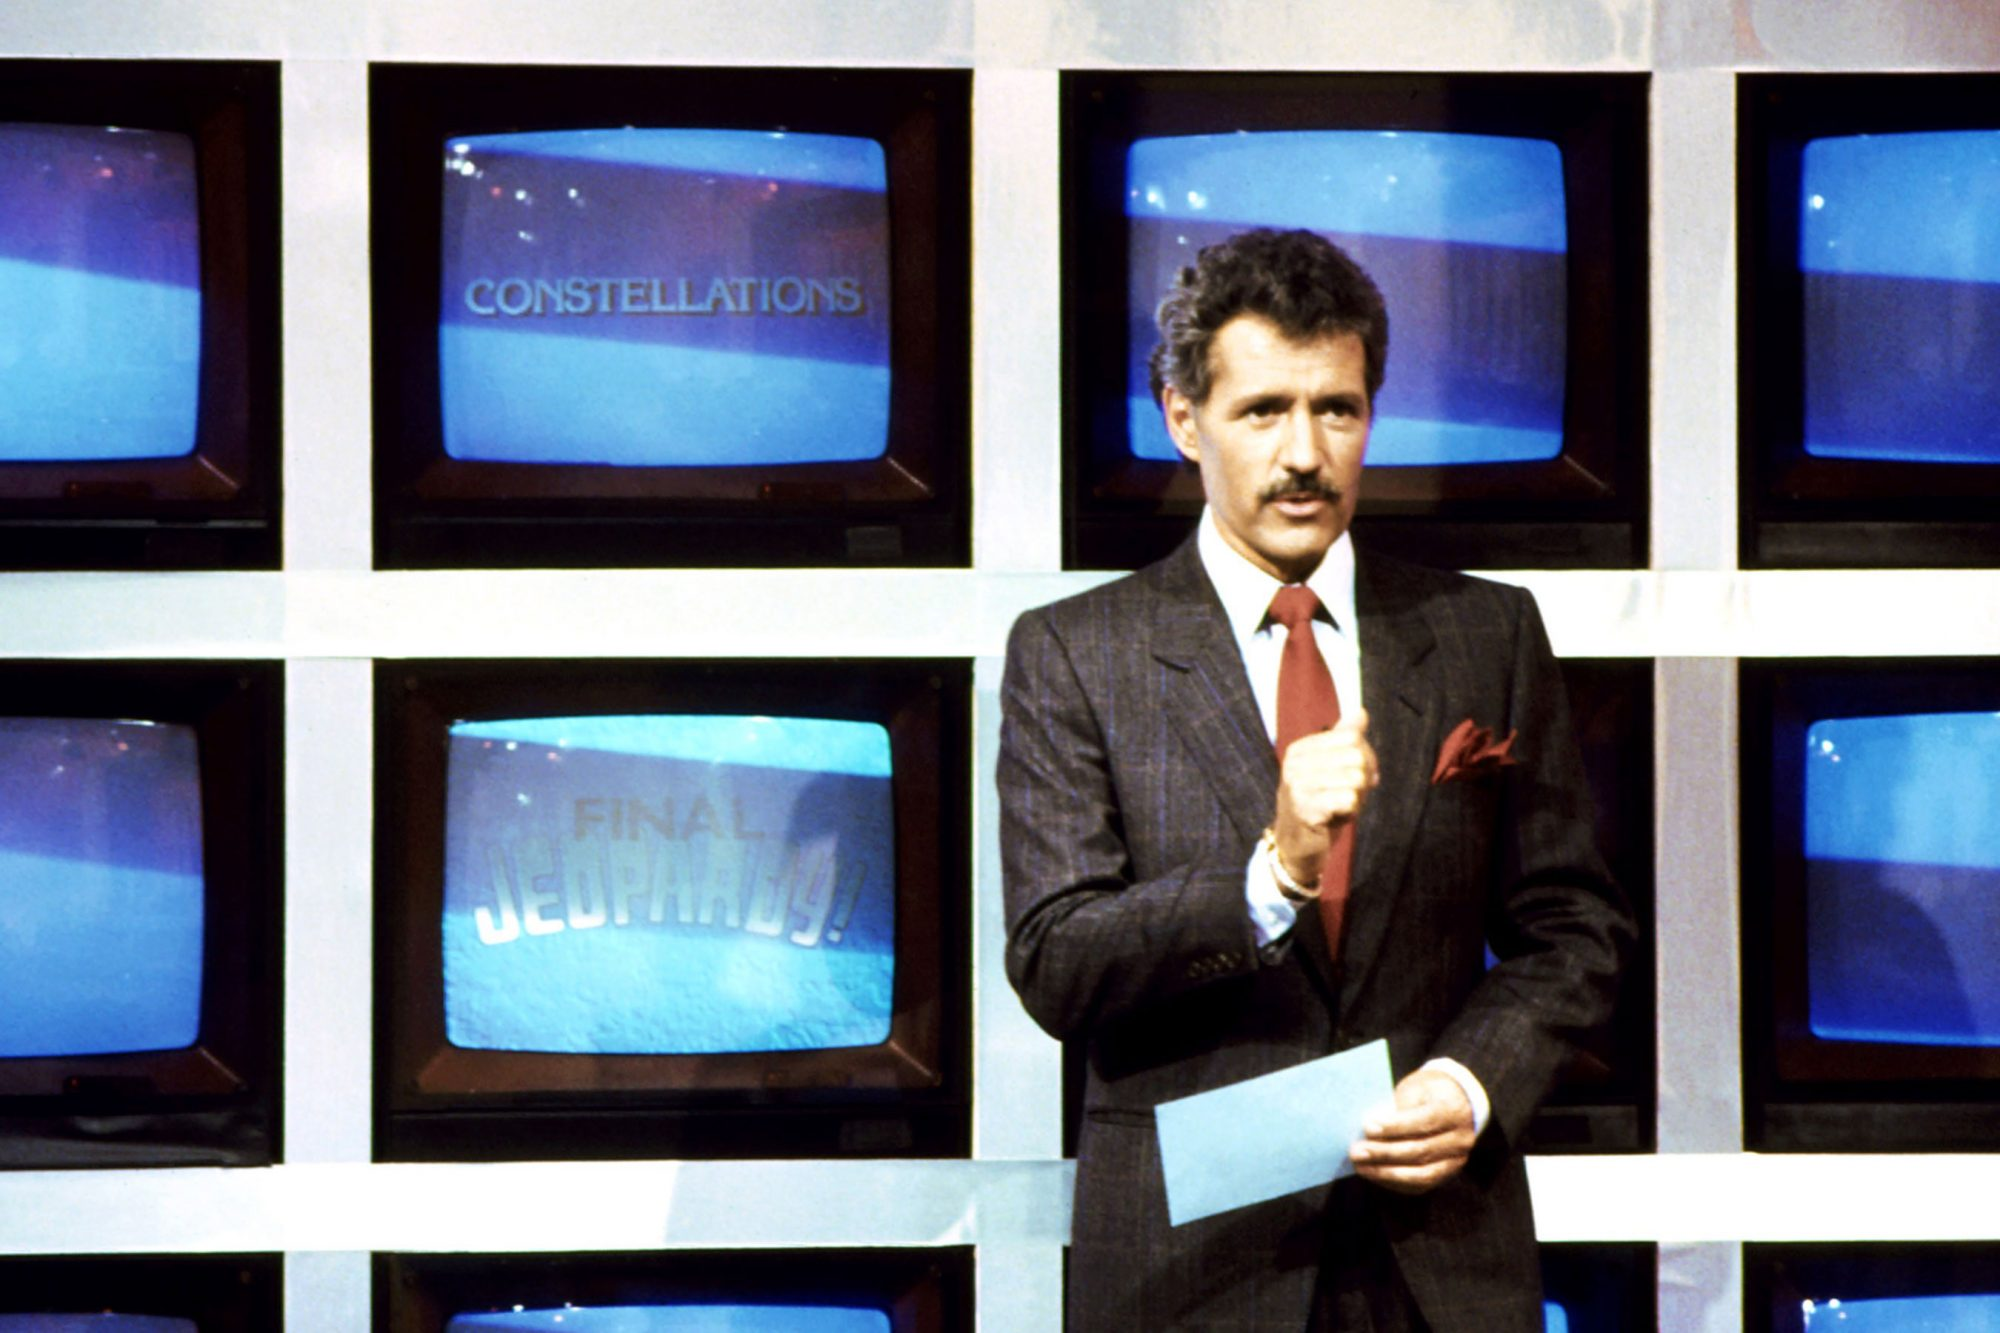 JEOPARDY!, host Alex Trebek (during 'Final Jeopardy' segment), 1984-, © ABC / Courtesy: Everett Coll